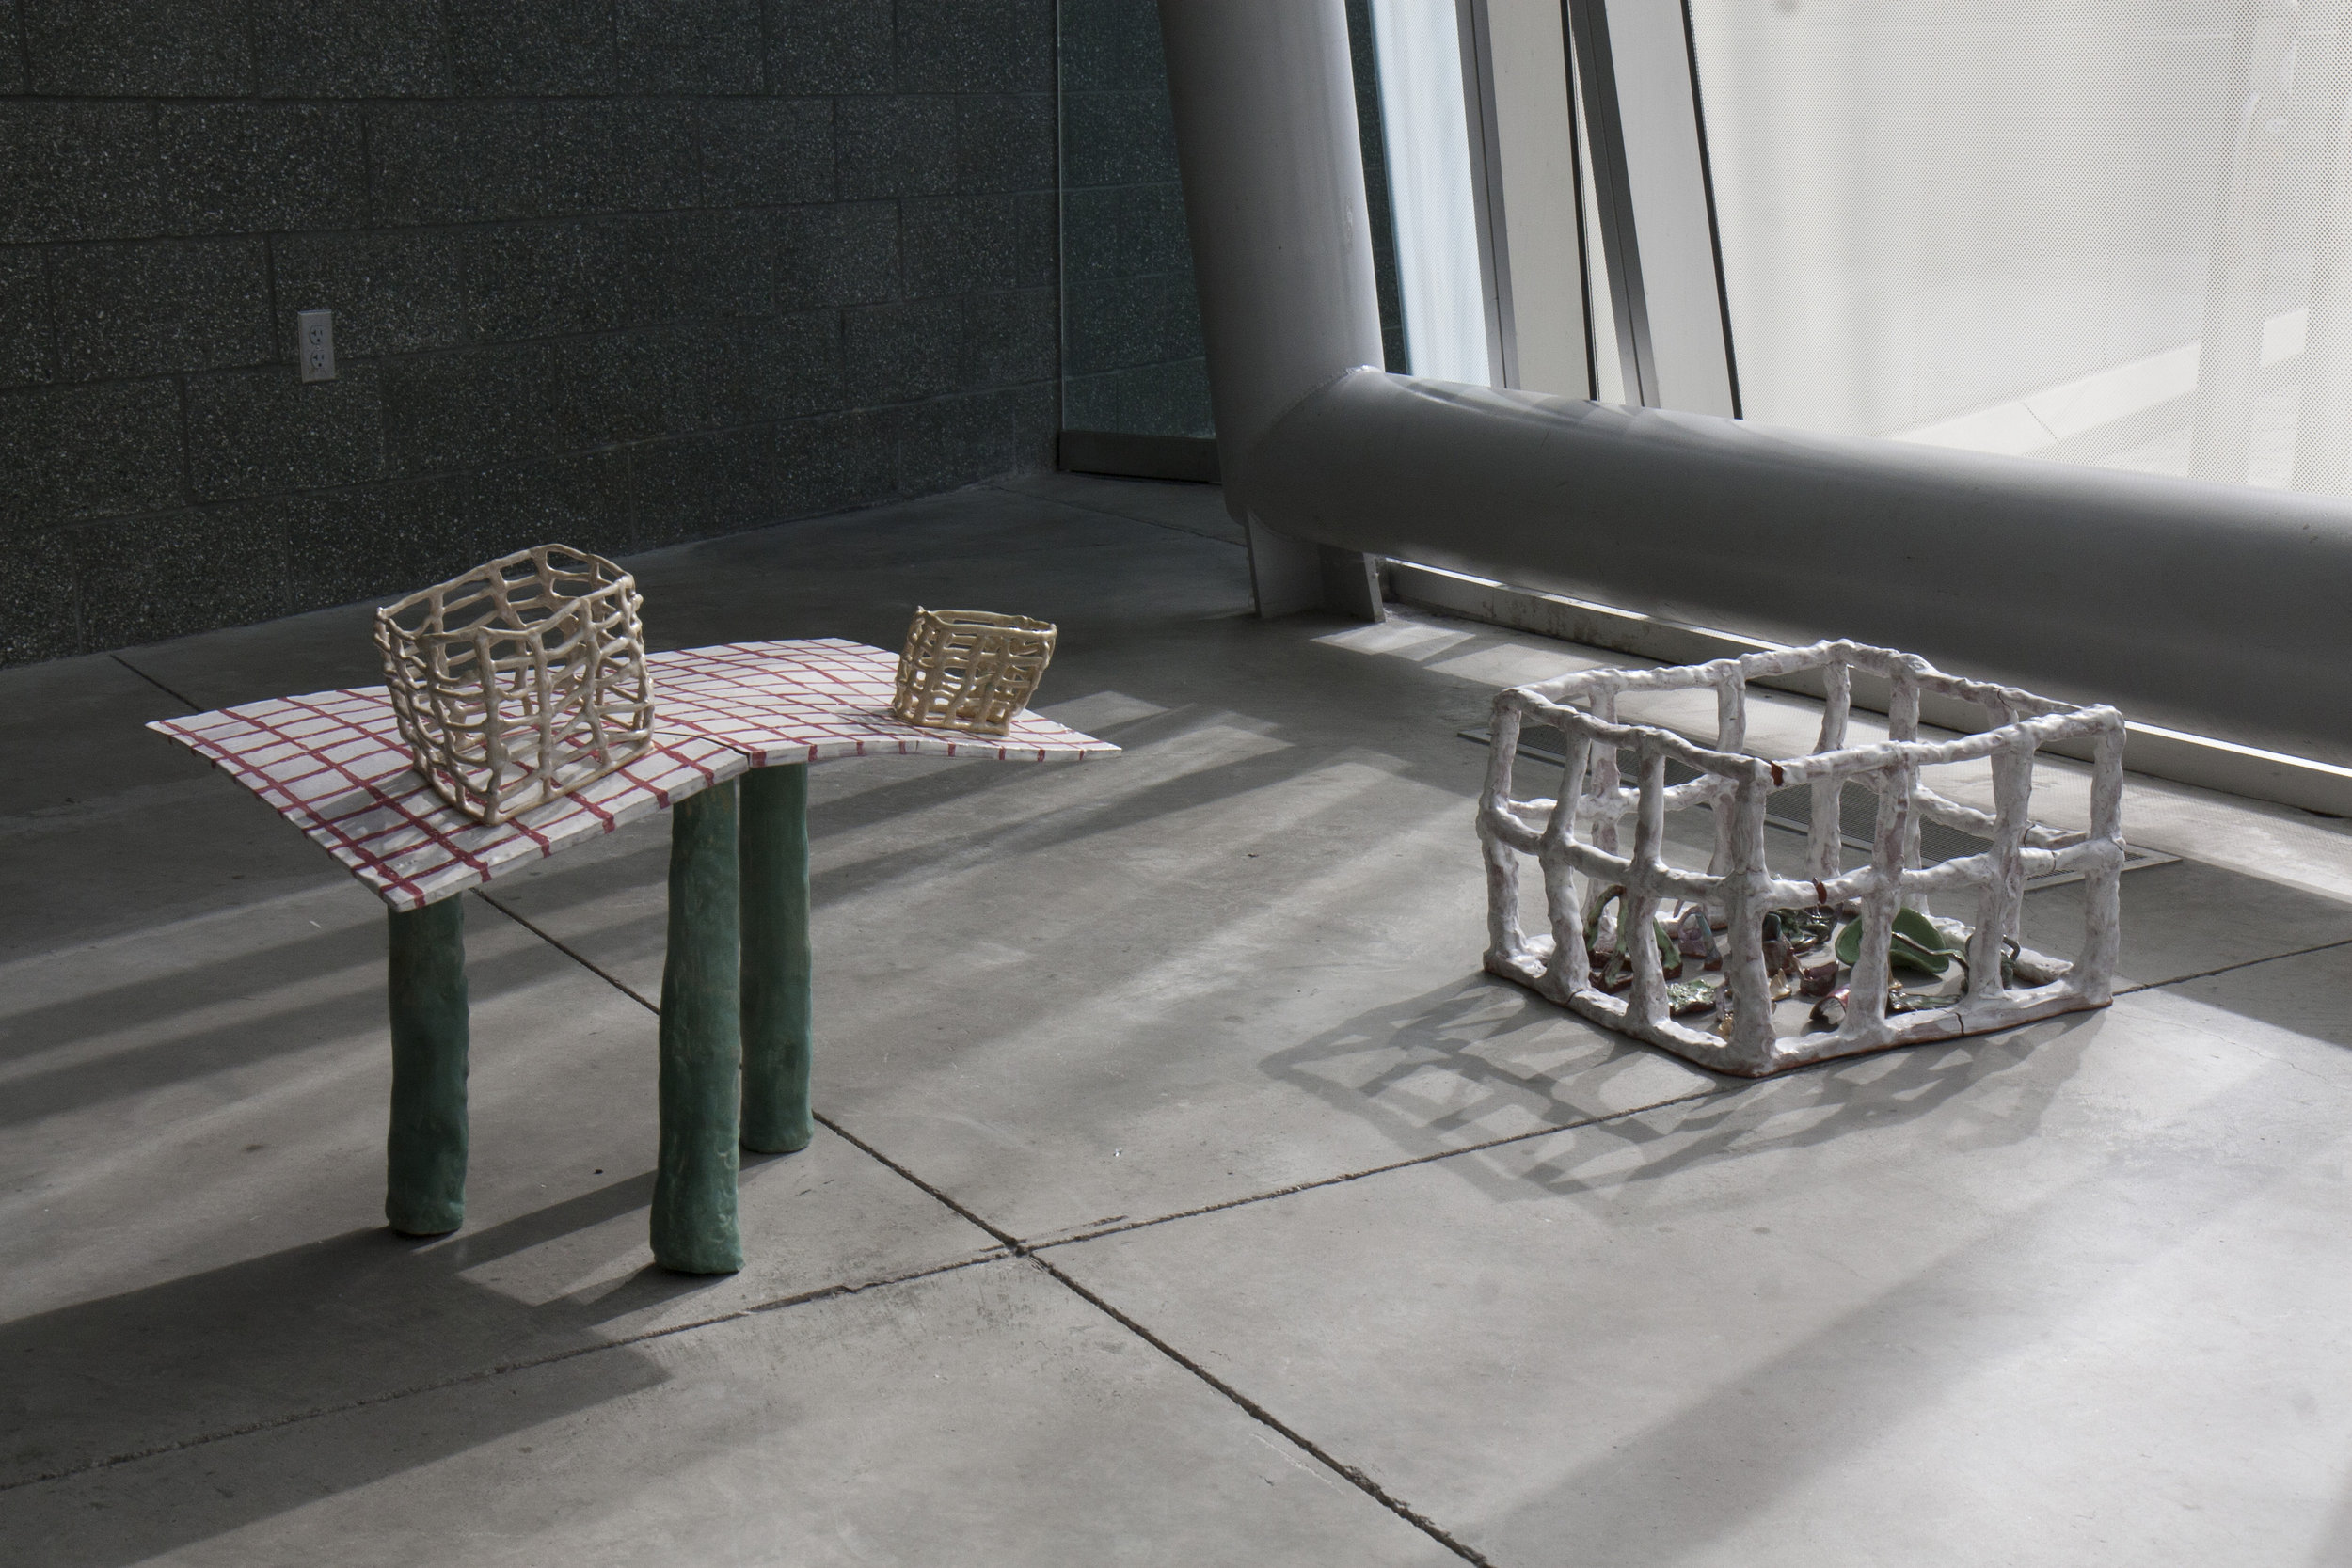 """playroom invitation  2017 ceramics table 1.5x1.5x2.5"""" cage 1.5x1x2.5"""" objects are roughly palm sized   bringing objects from my dreams into existence  participants were invited to play and construct their own reality under observation in a sterile environment"""